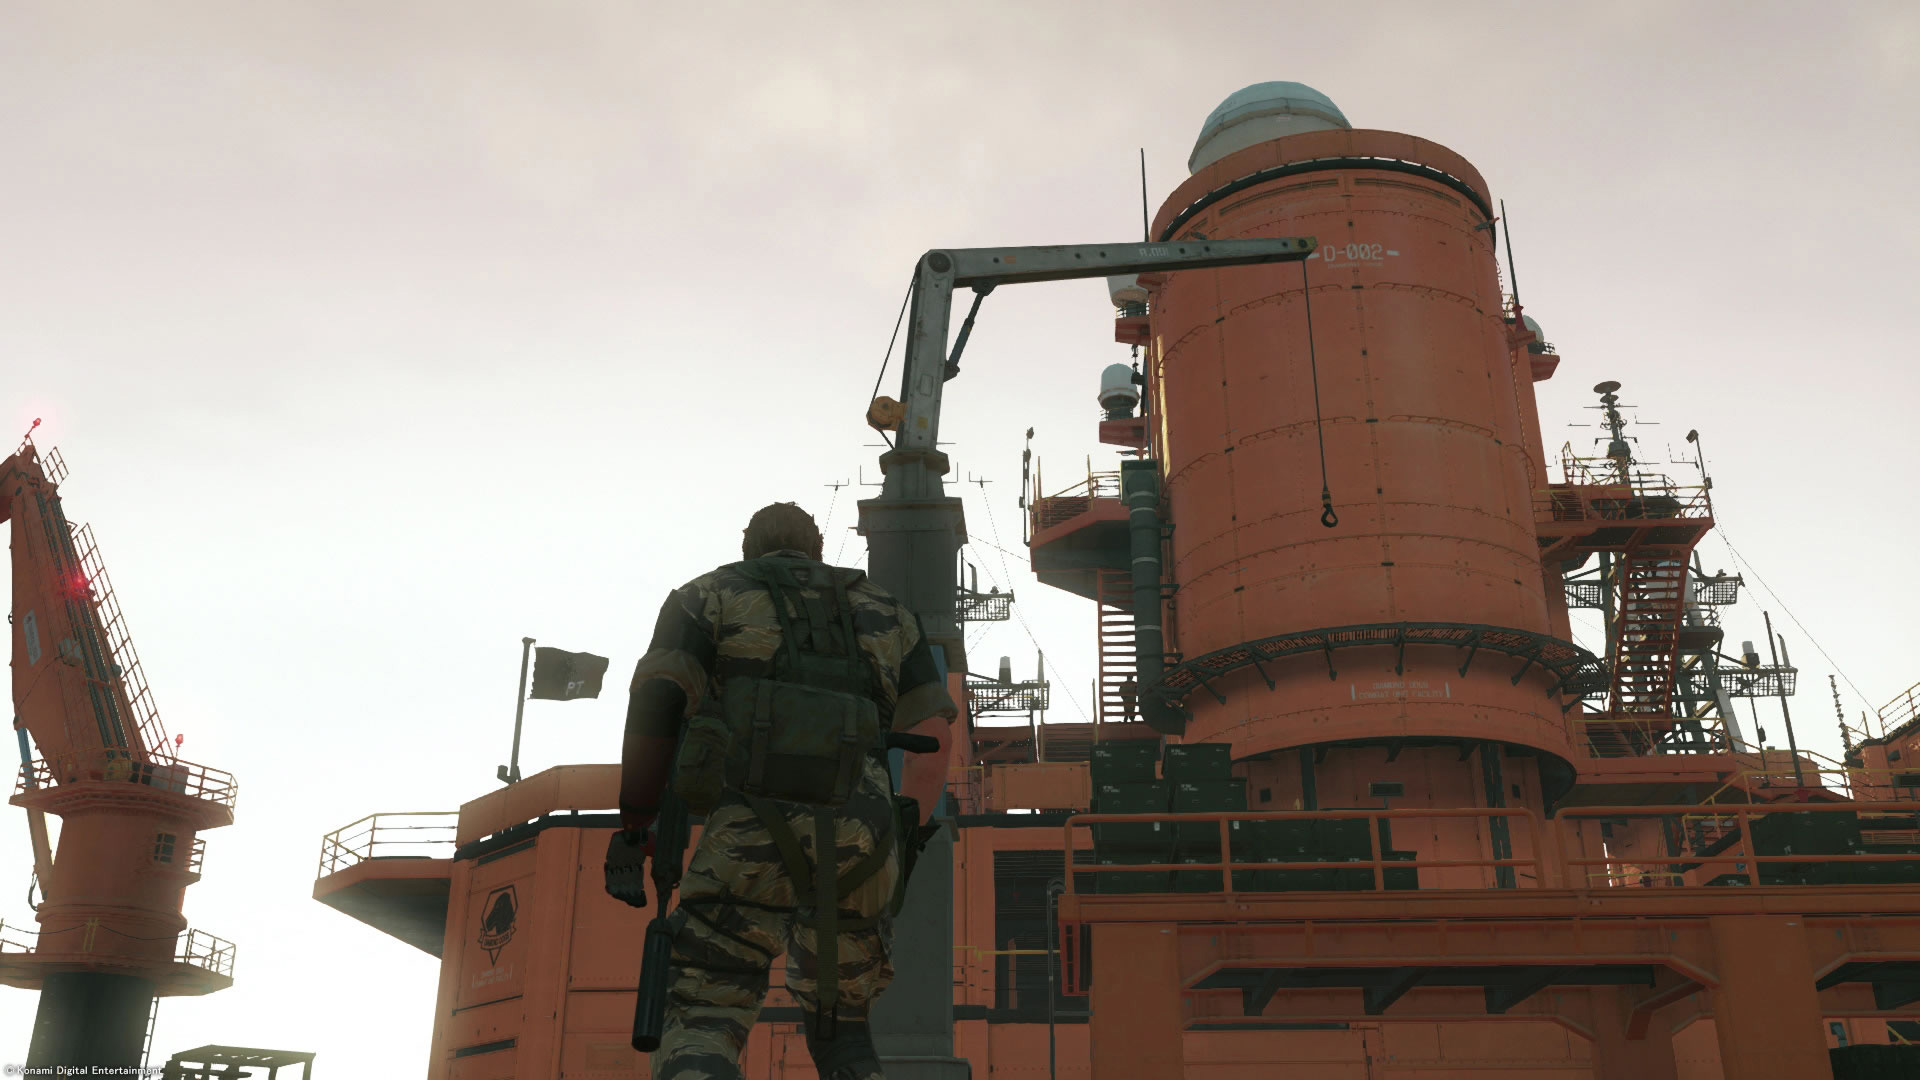 Metal-Gear-Solid-V-The-Phantom-Pain-Screenshot-Gamescom-2015-2